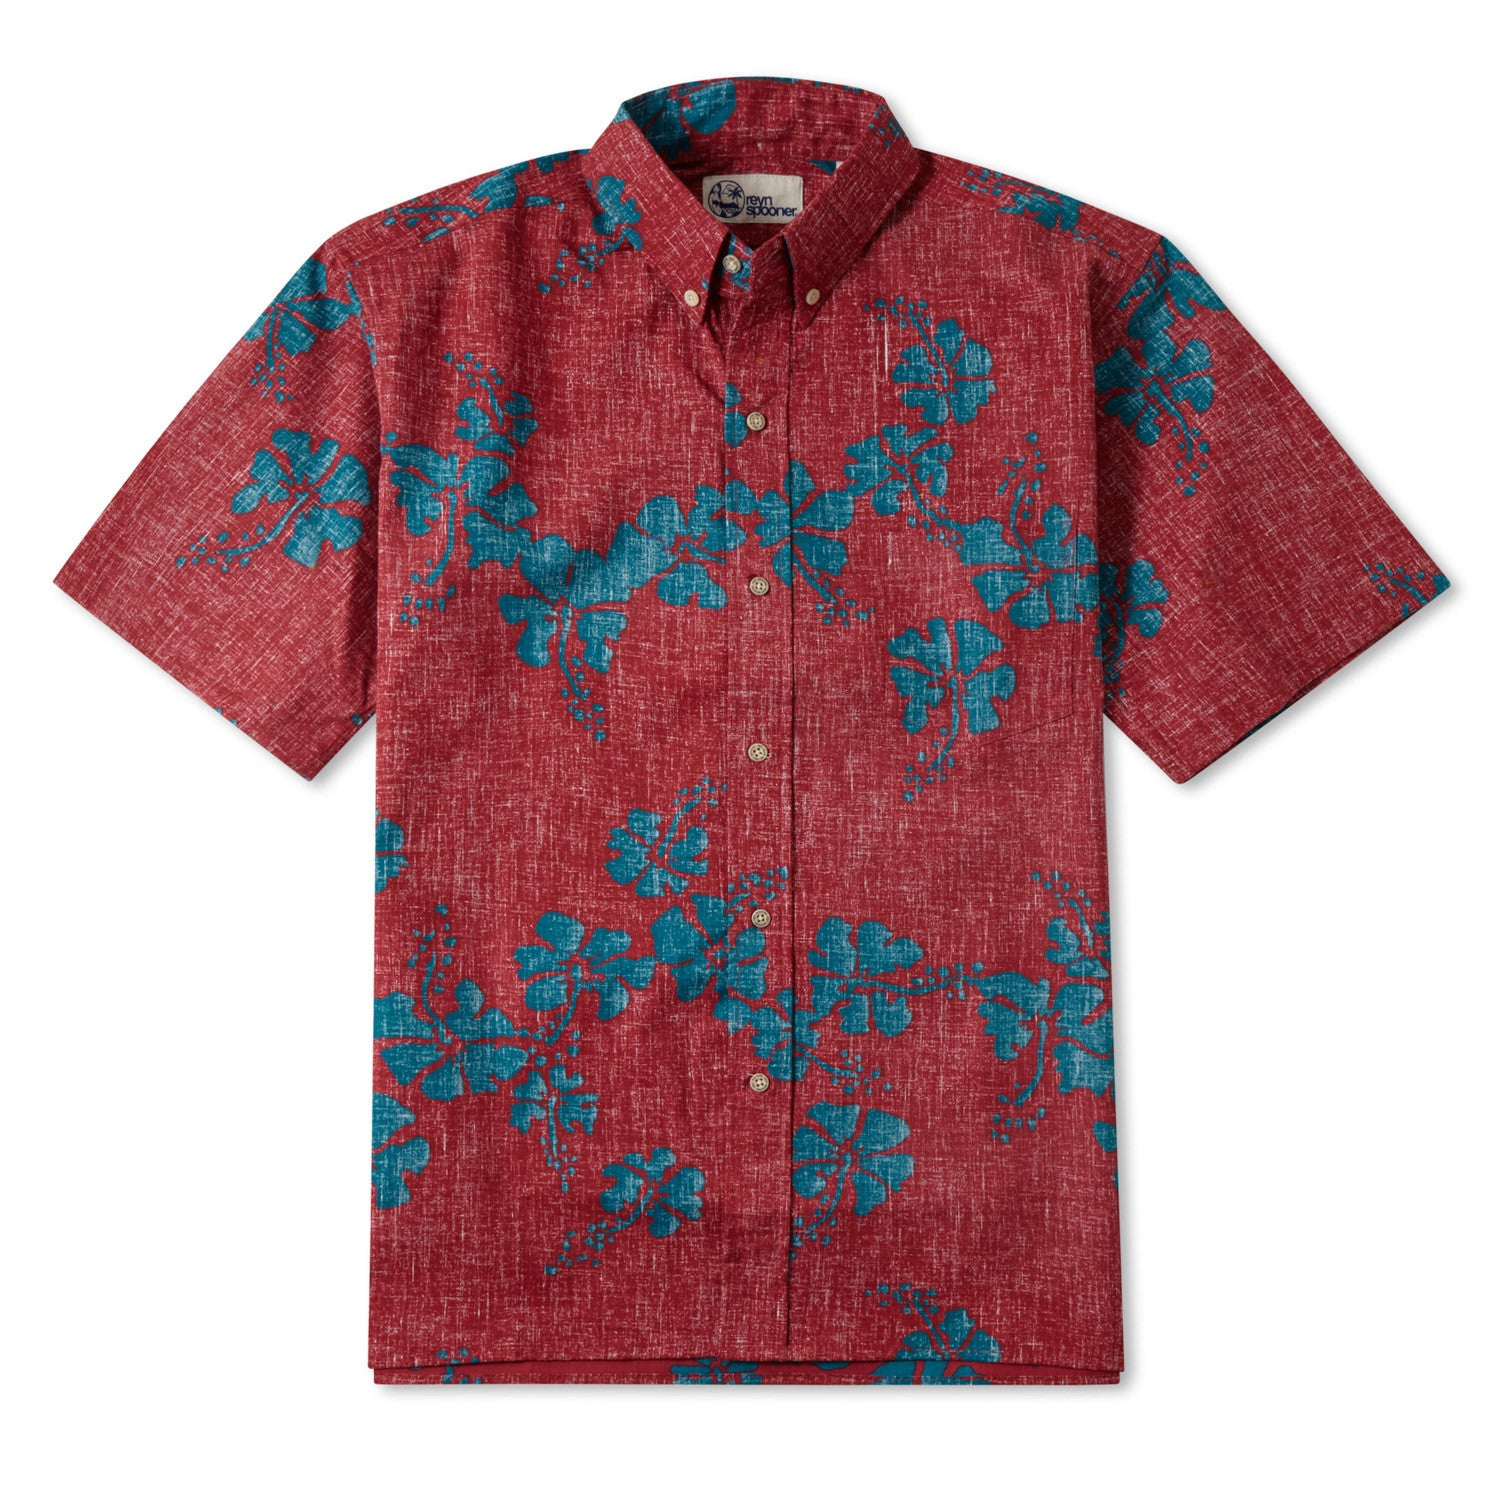 50Th State Flower / Classic Fit Button Front Shirt, Cotton/Polyester, For Men, 2XL, Red, From Reyn Spooner